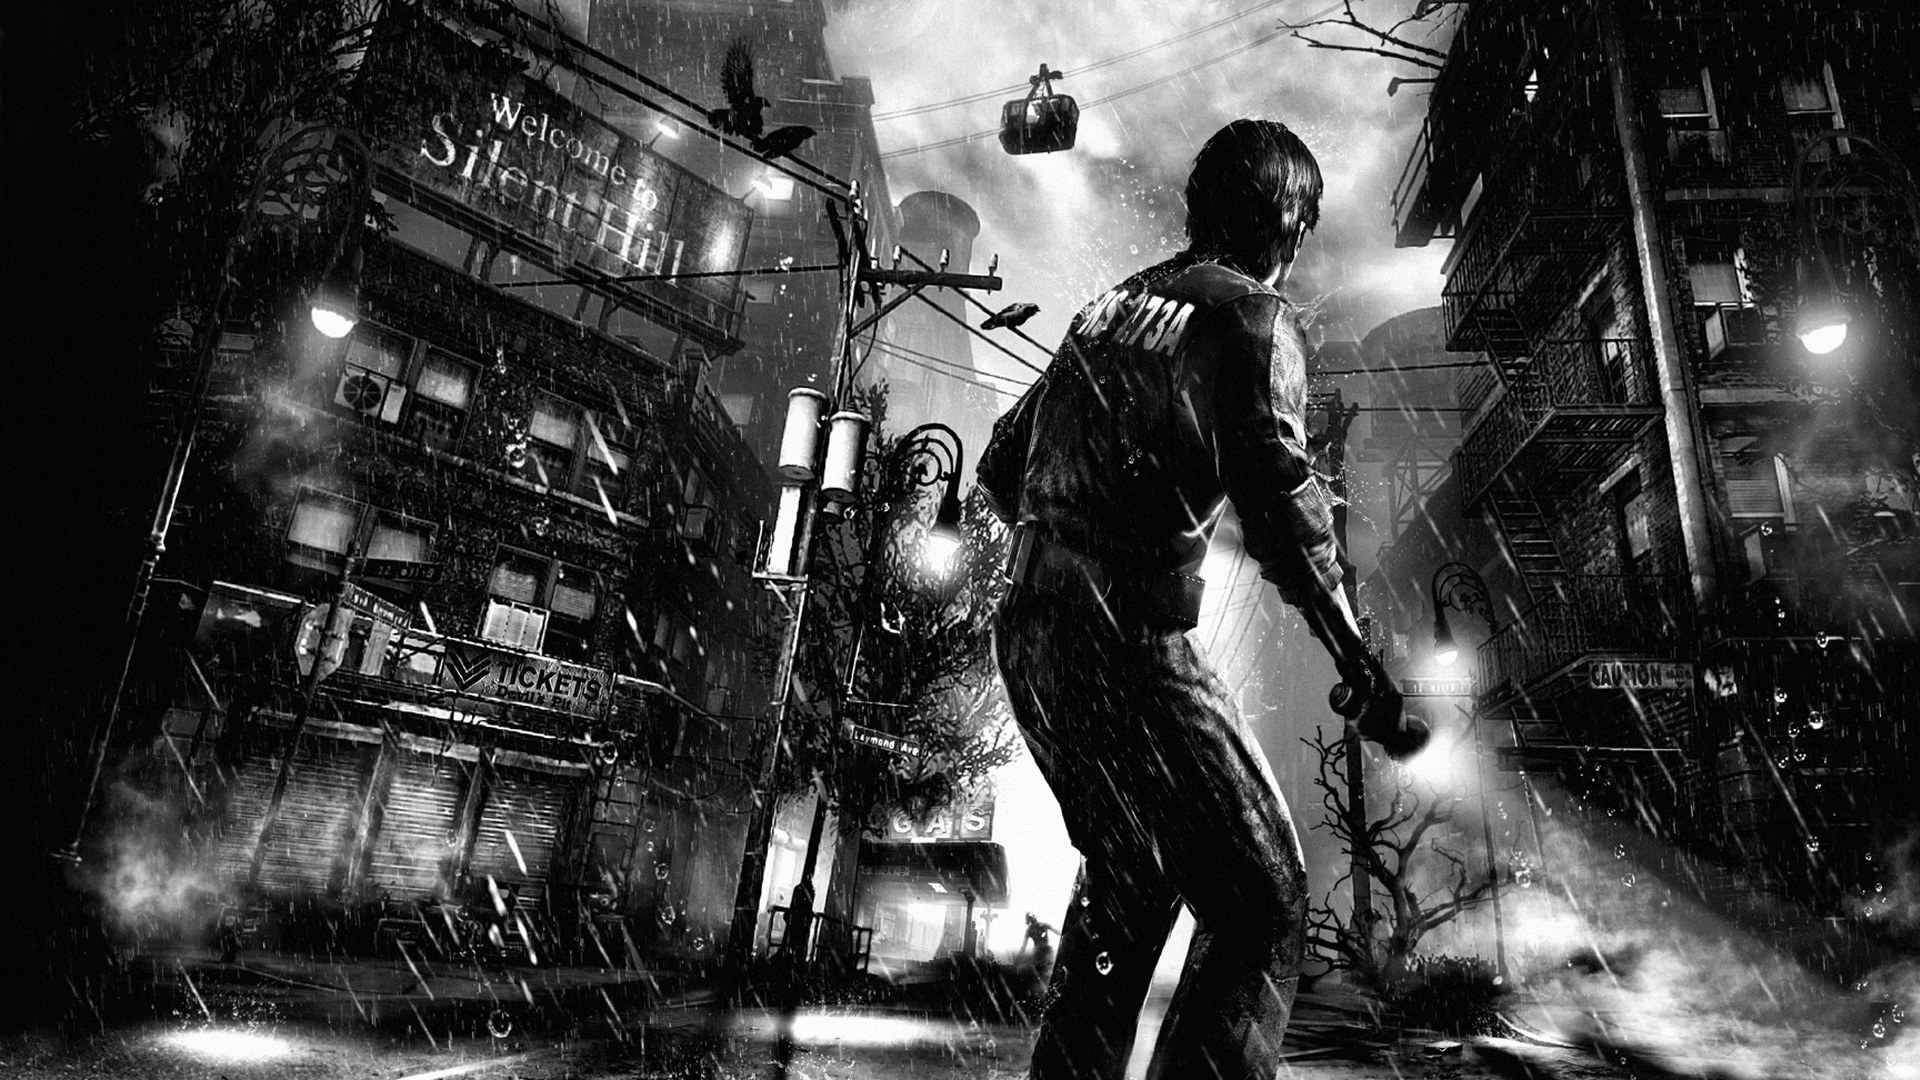 Free Silent Hill: Downpour Wallpaper in 1920x1080